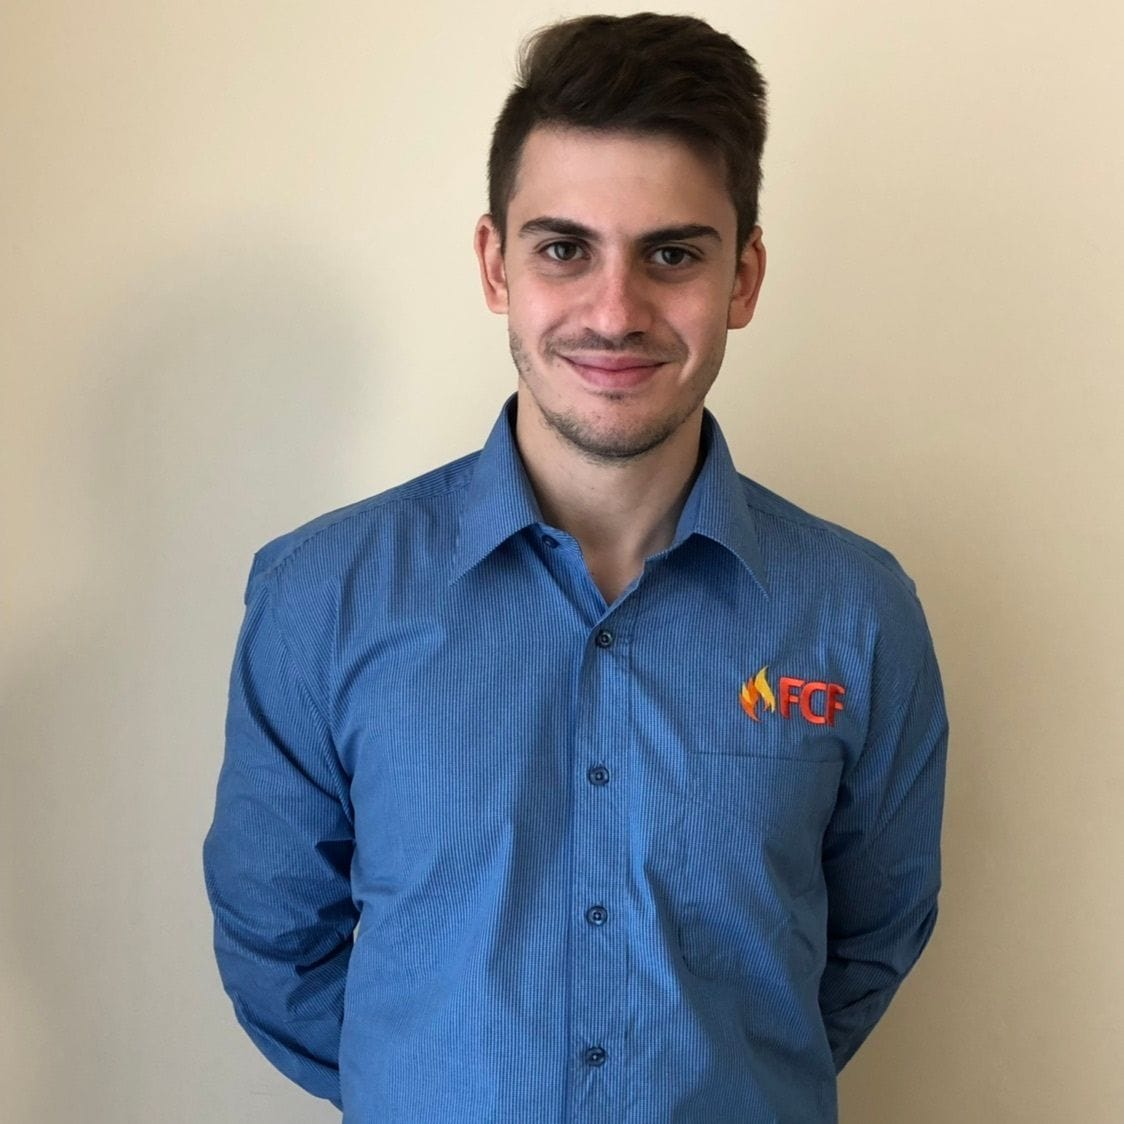 Michael Metros, FCF South East Sydney | New South Wales Fire, Electrical and Safety Compliance Services